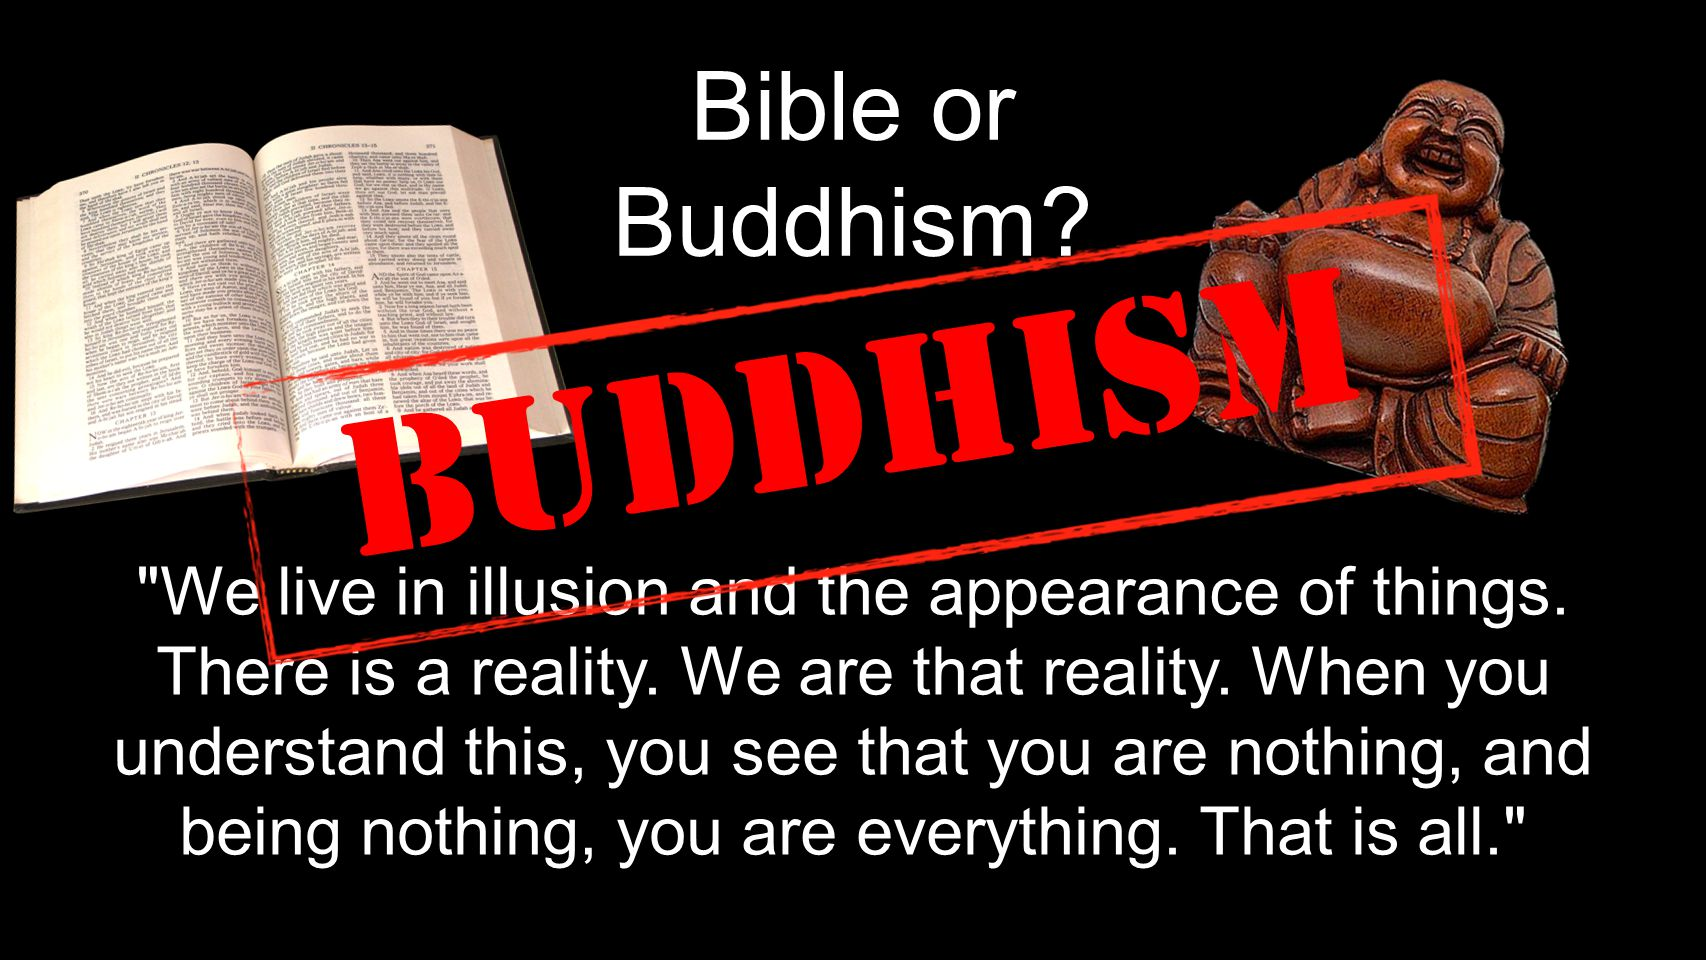 Bible or Buddhism. We live in illusion and the appearance of things.